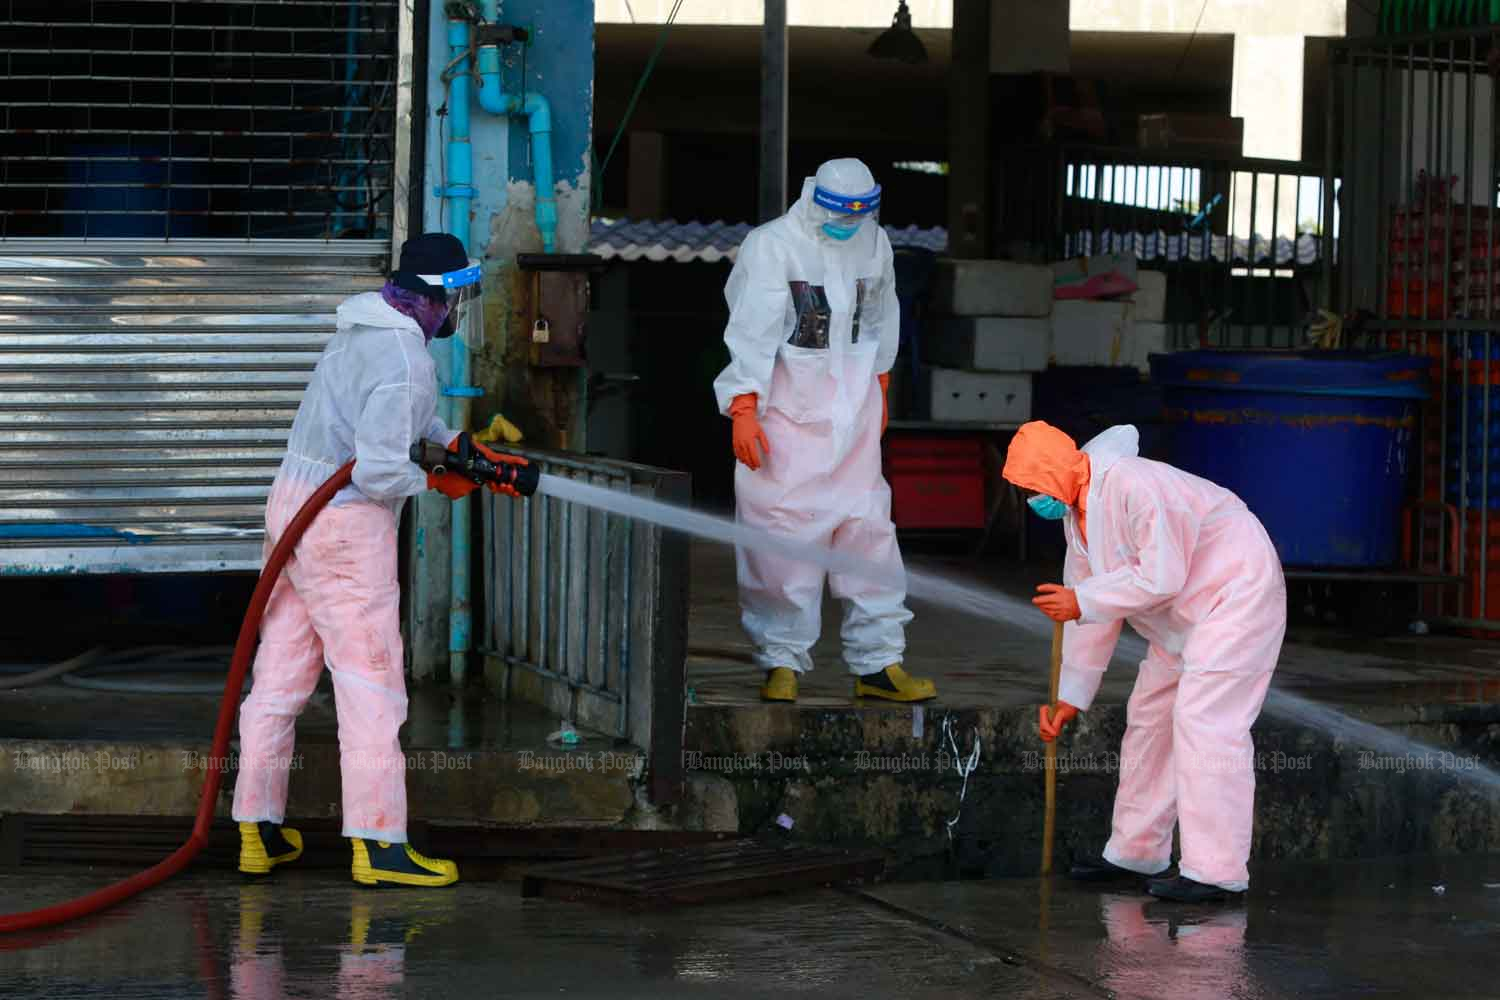 The central shrimp market in Muang district of Samut Sakhon province, a hotspot for the Covid-19 outbreak, gets another clean on Tuesday. (Photo: Arnun Chonmahatrakool)